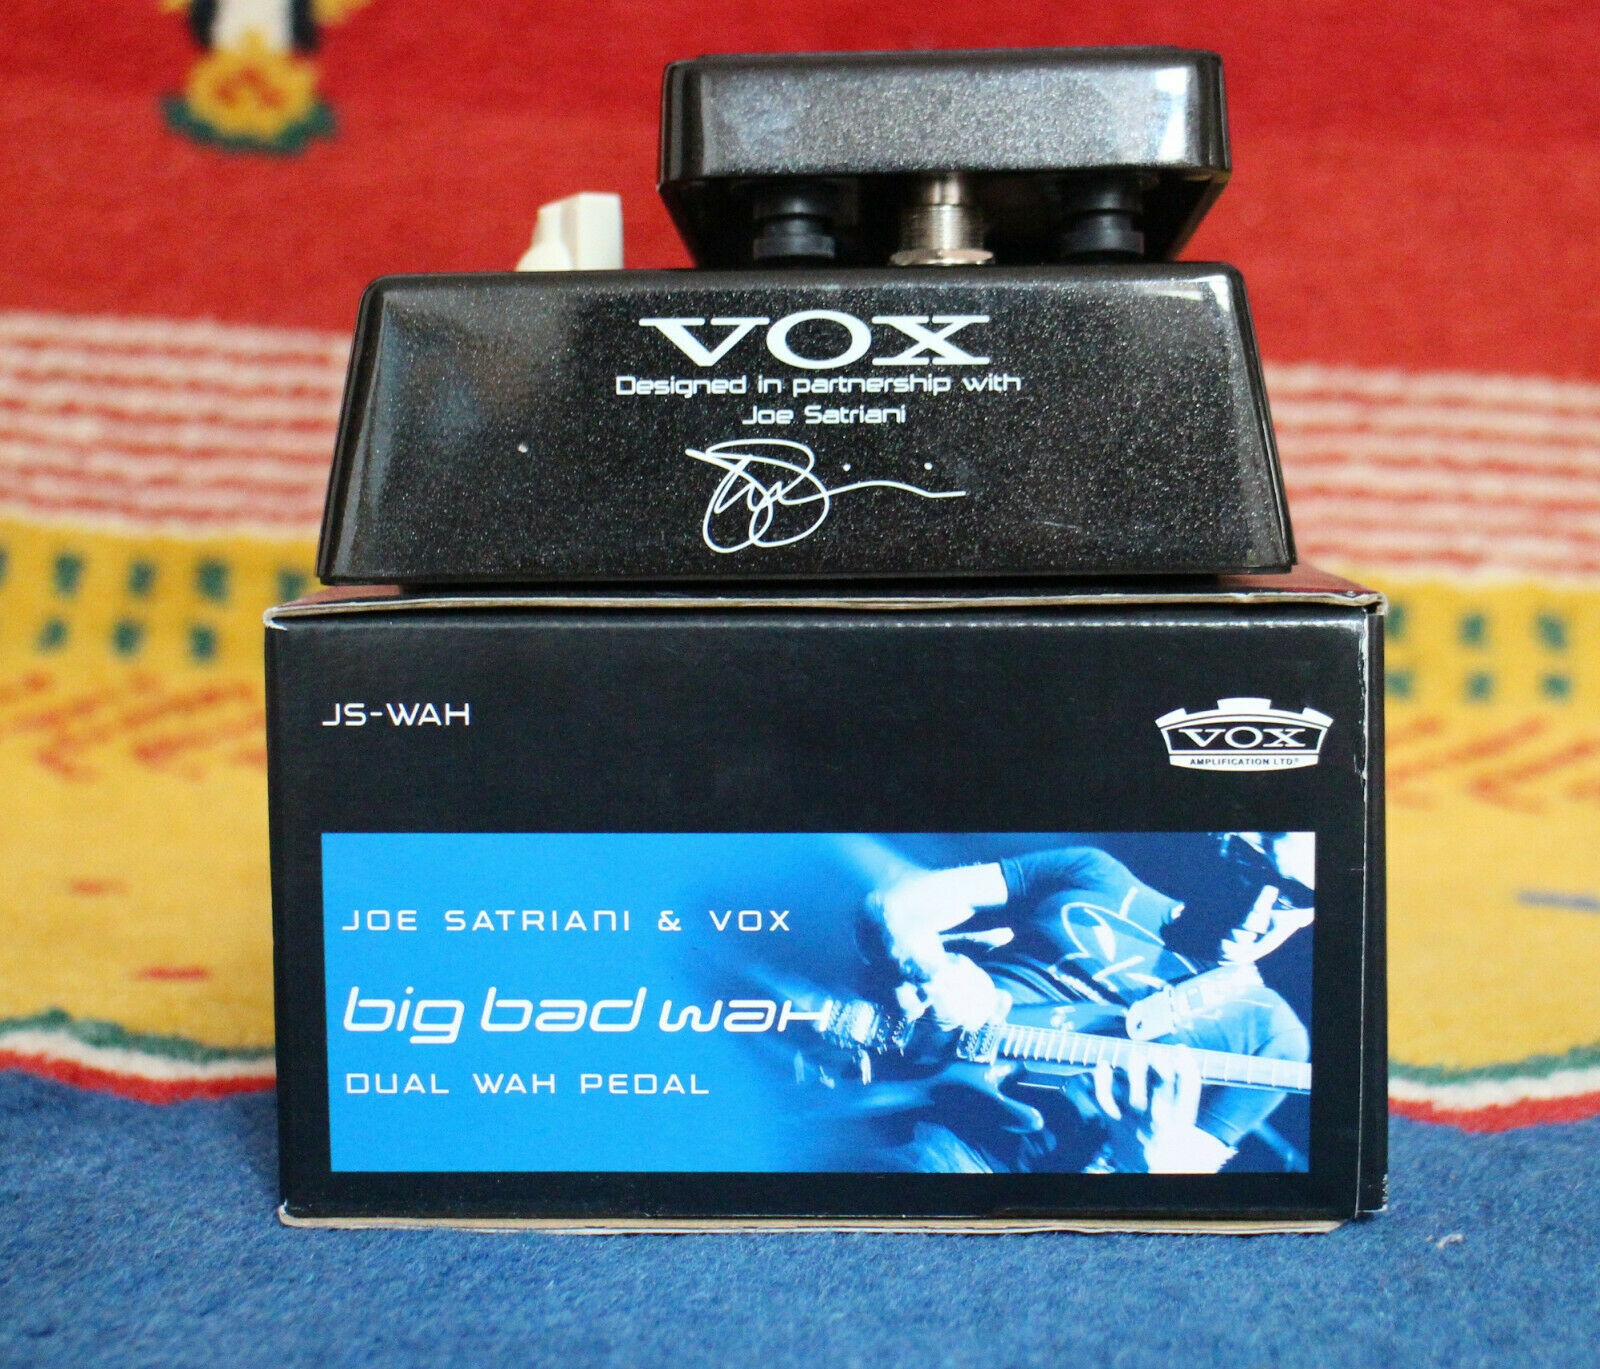 Vox Satriani Big Bad Wah